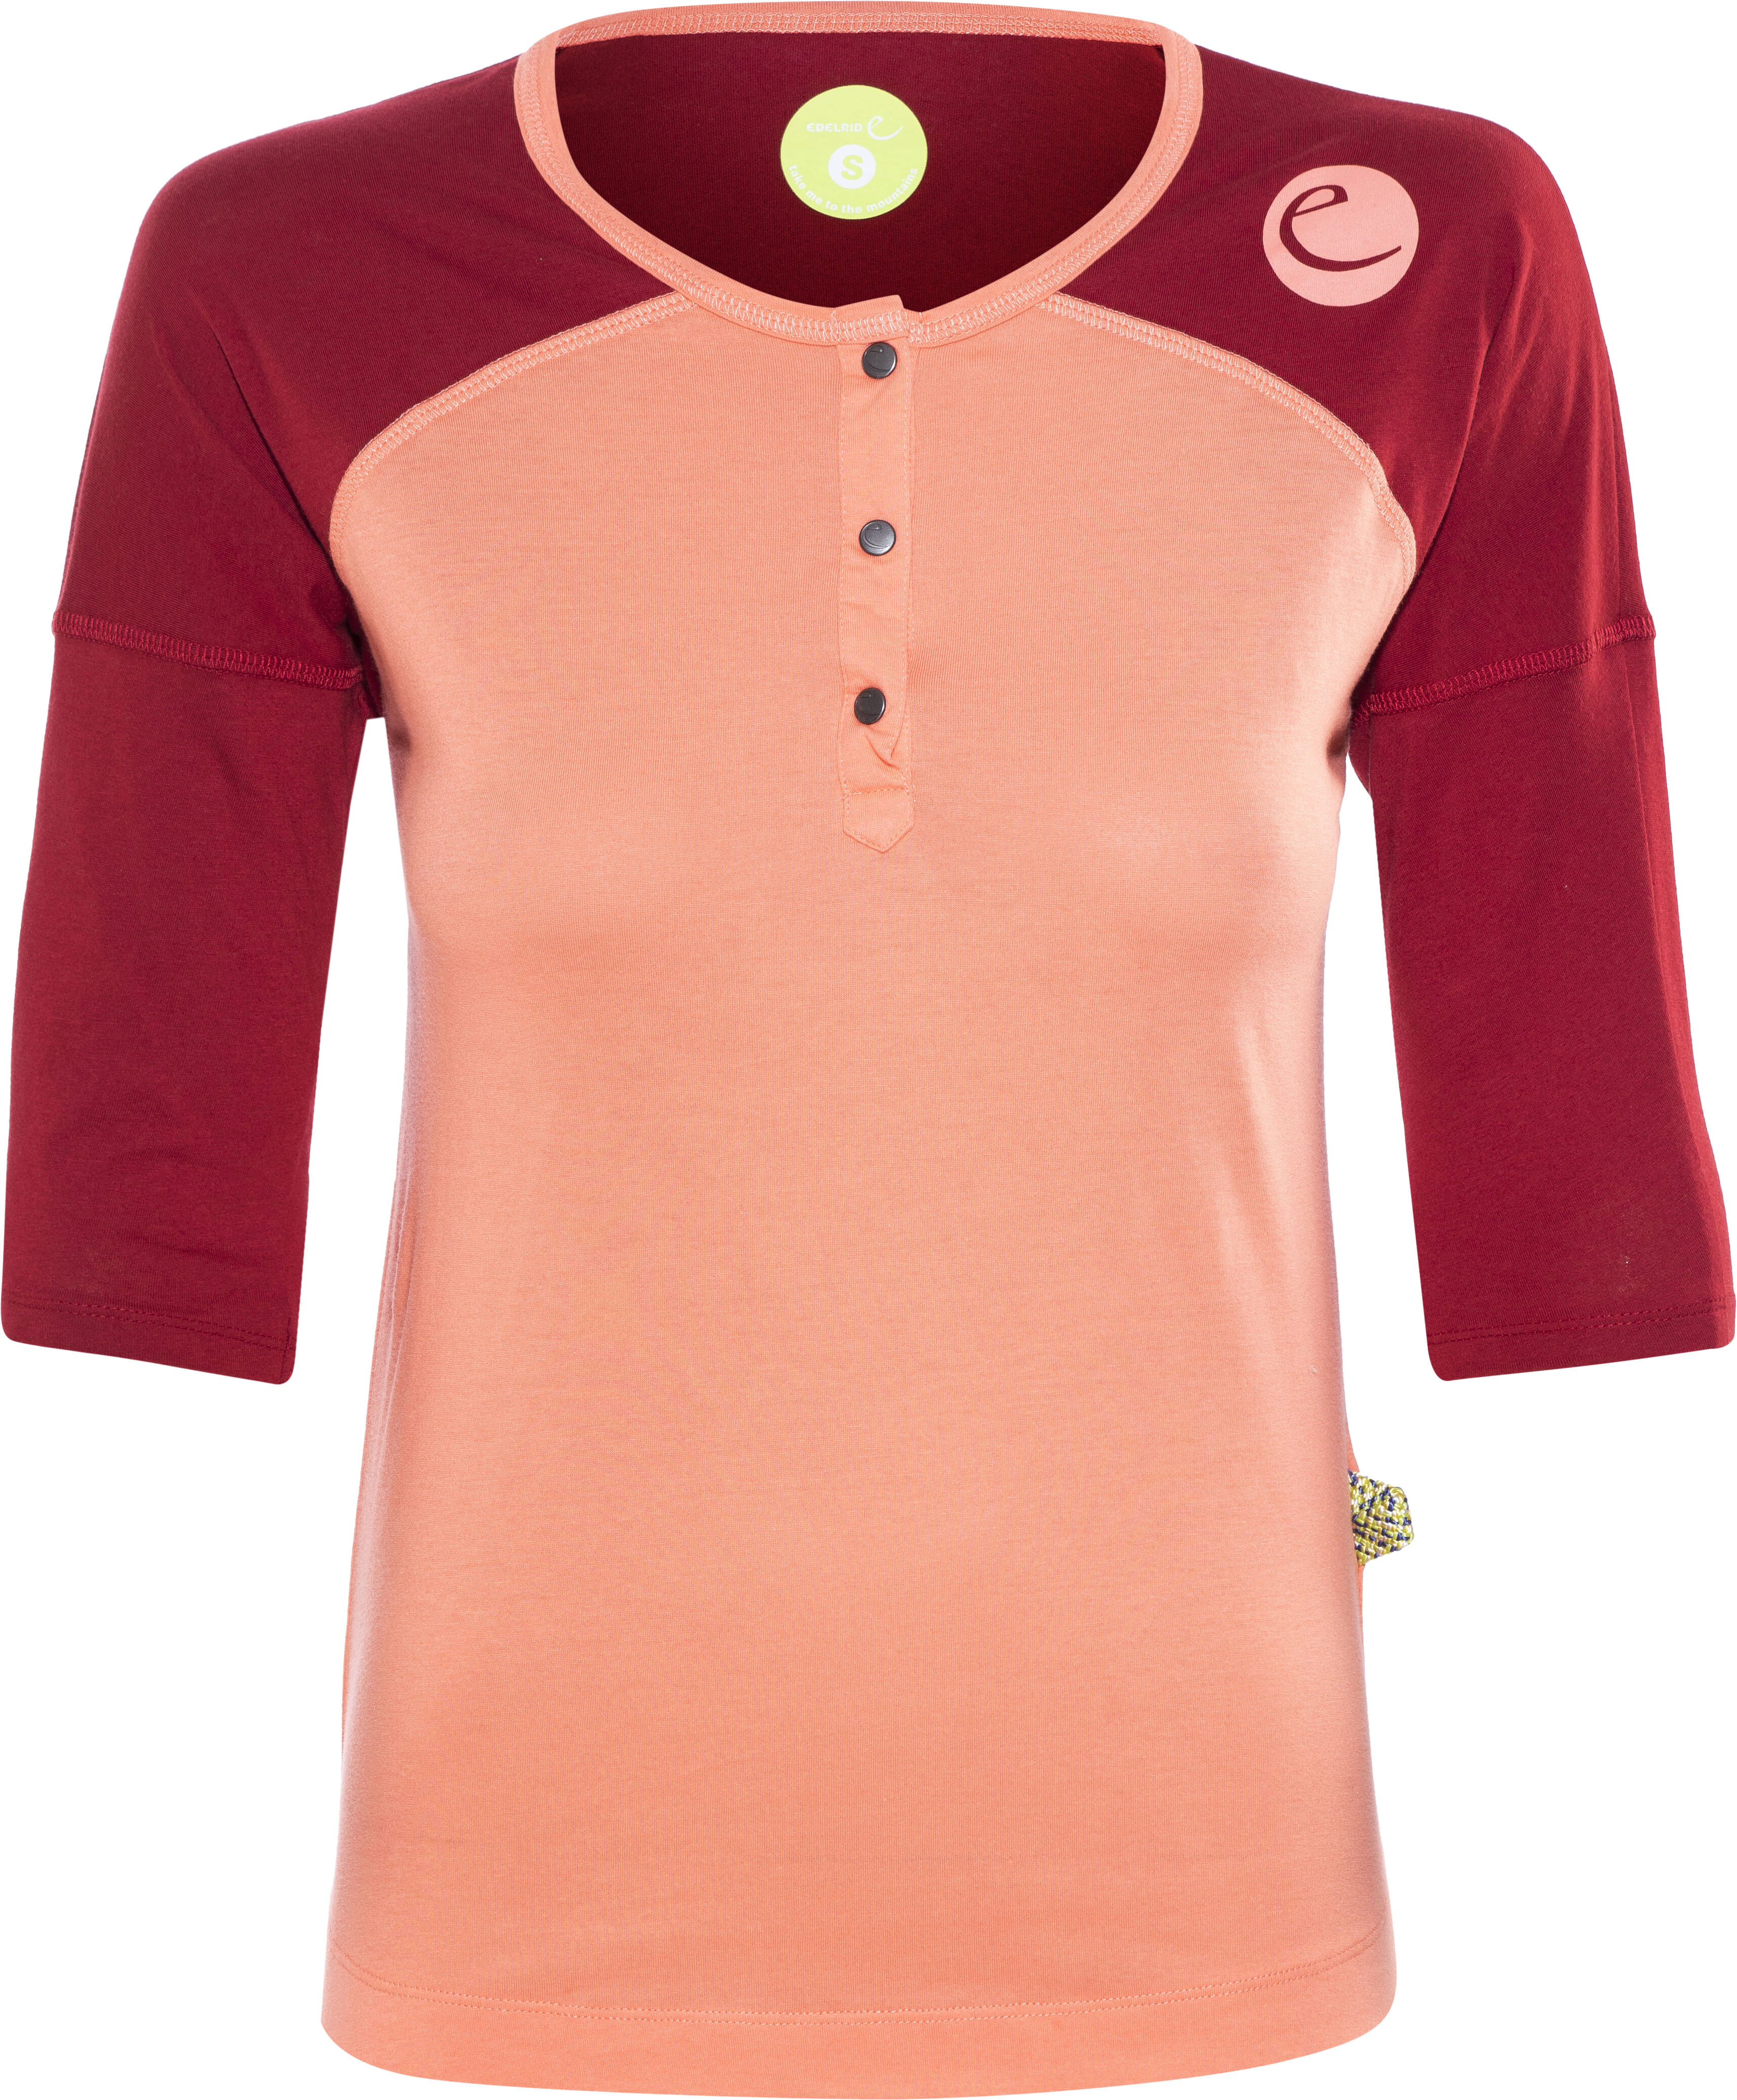 b7e08ac6eee Edelrid Highball - T-shirt manches longues Femme - orange rouge sur ...